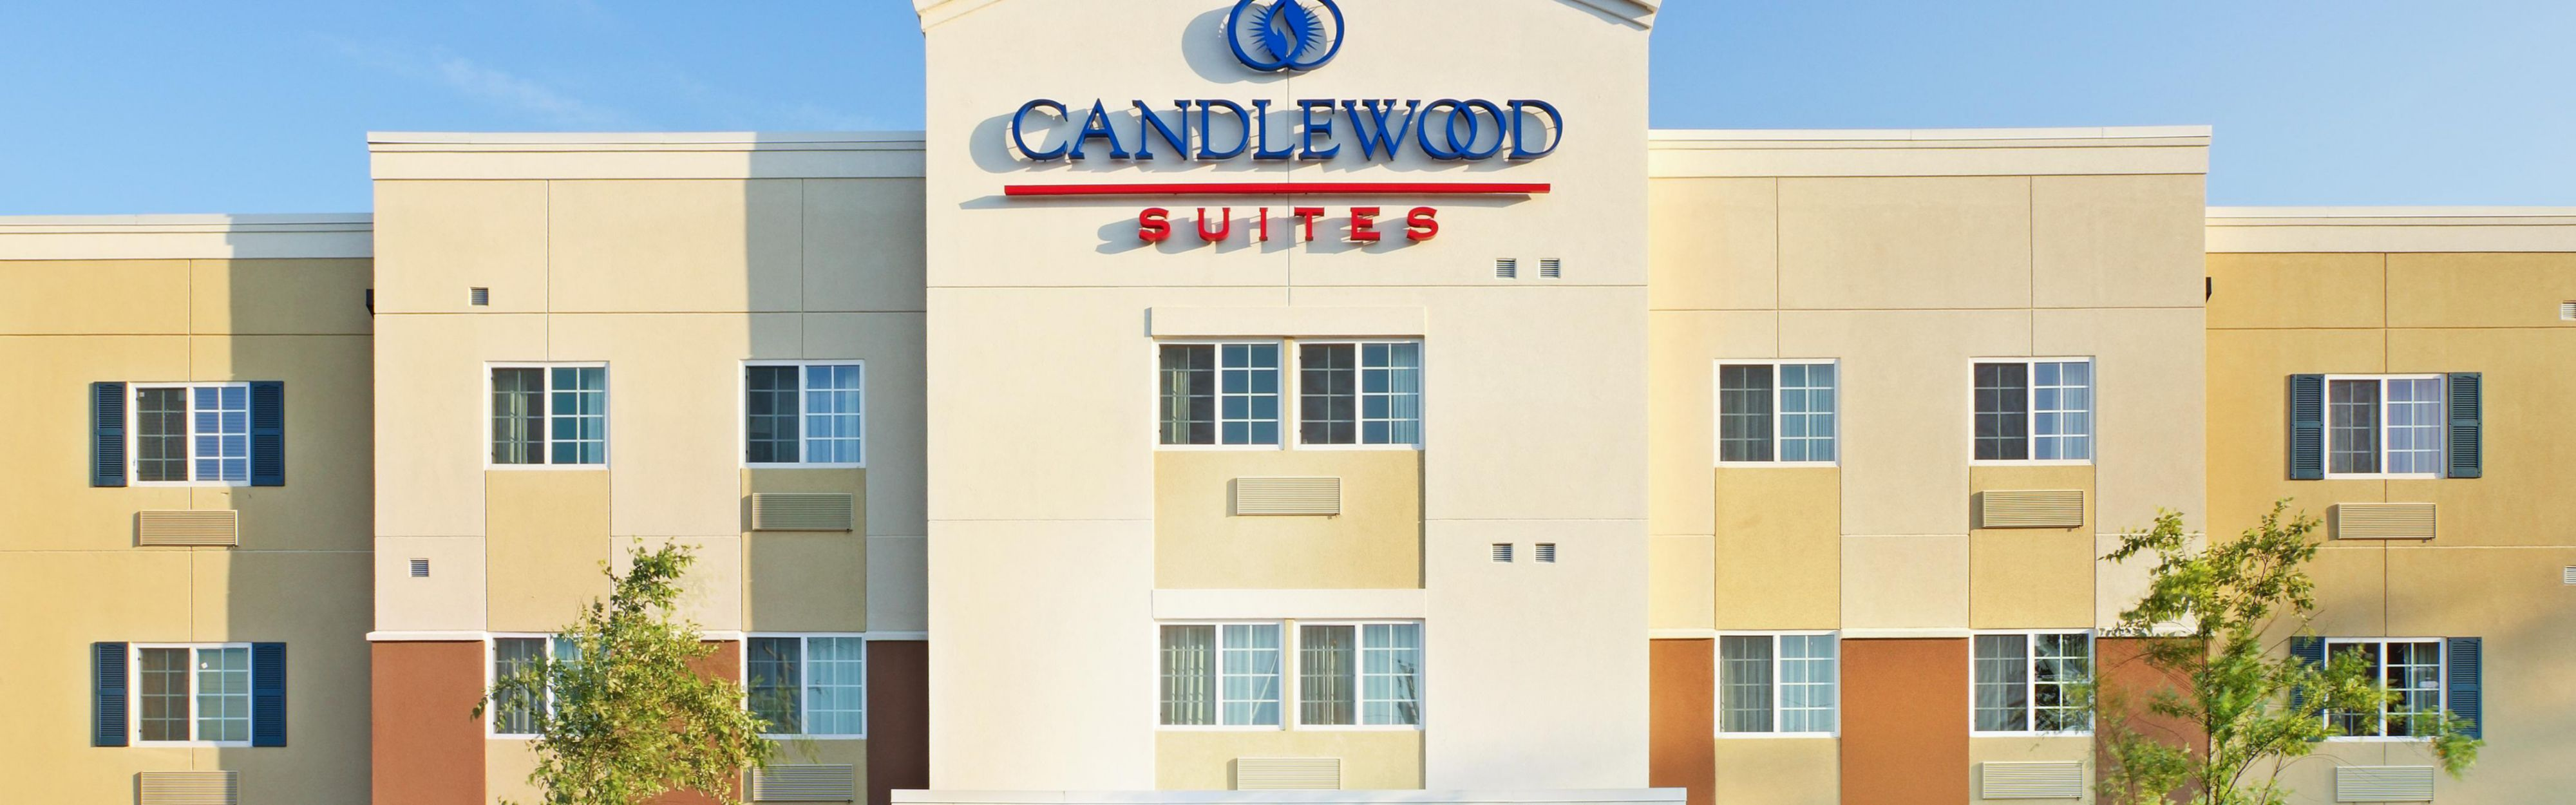 Candlewood Suites Hot Springs image 0